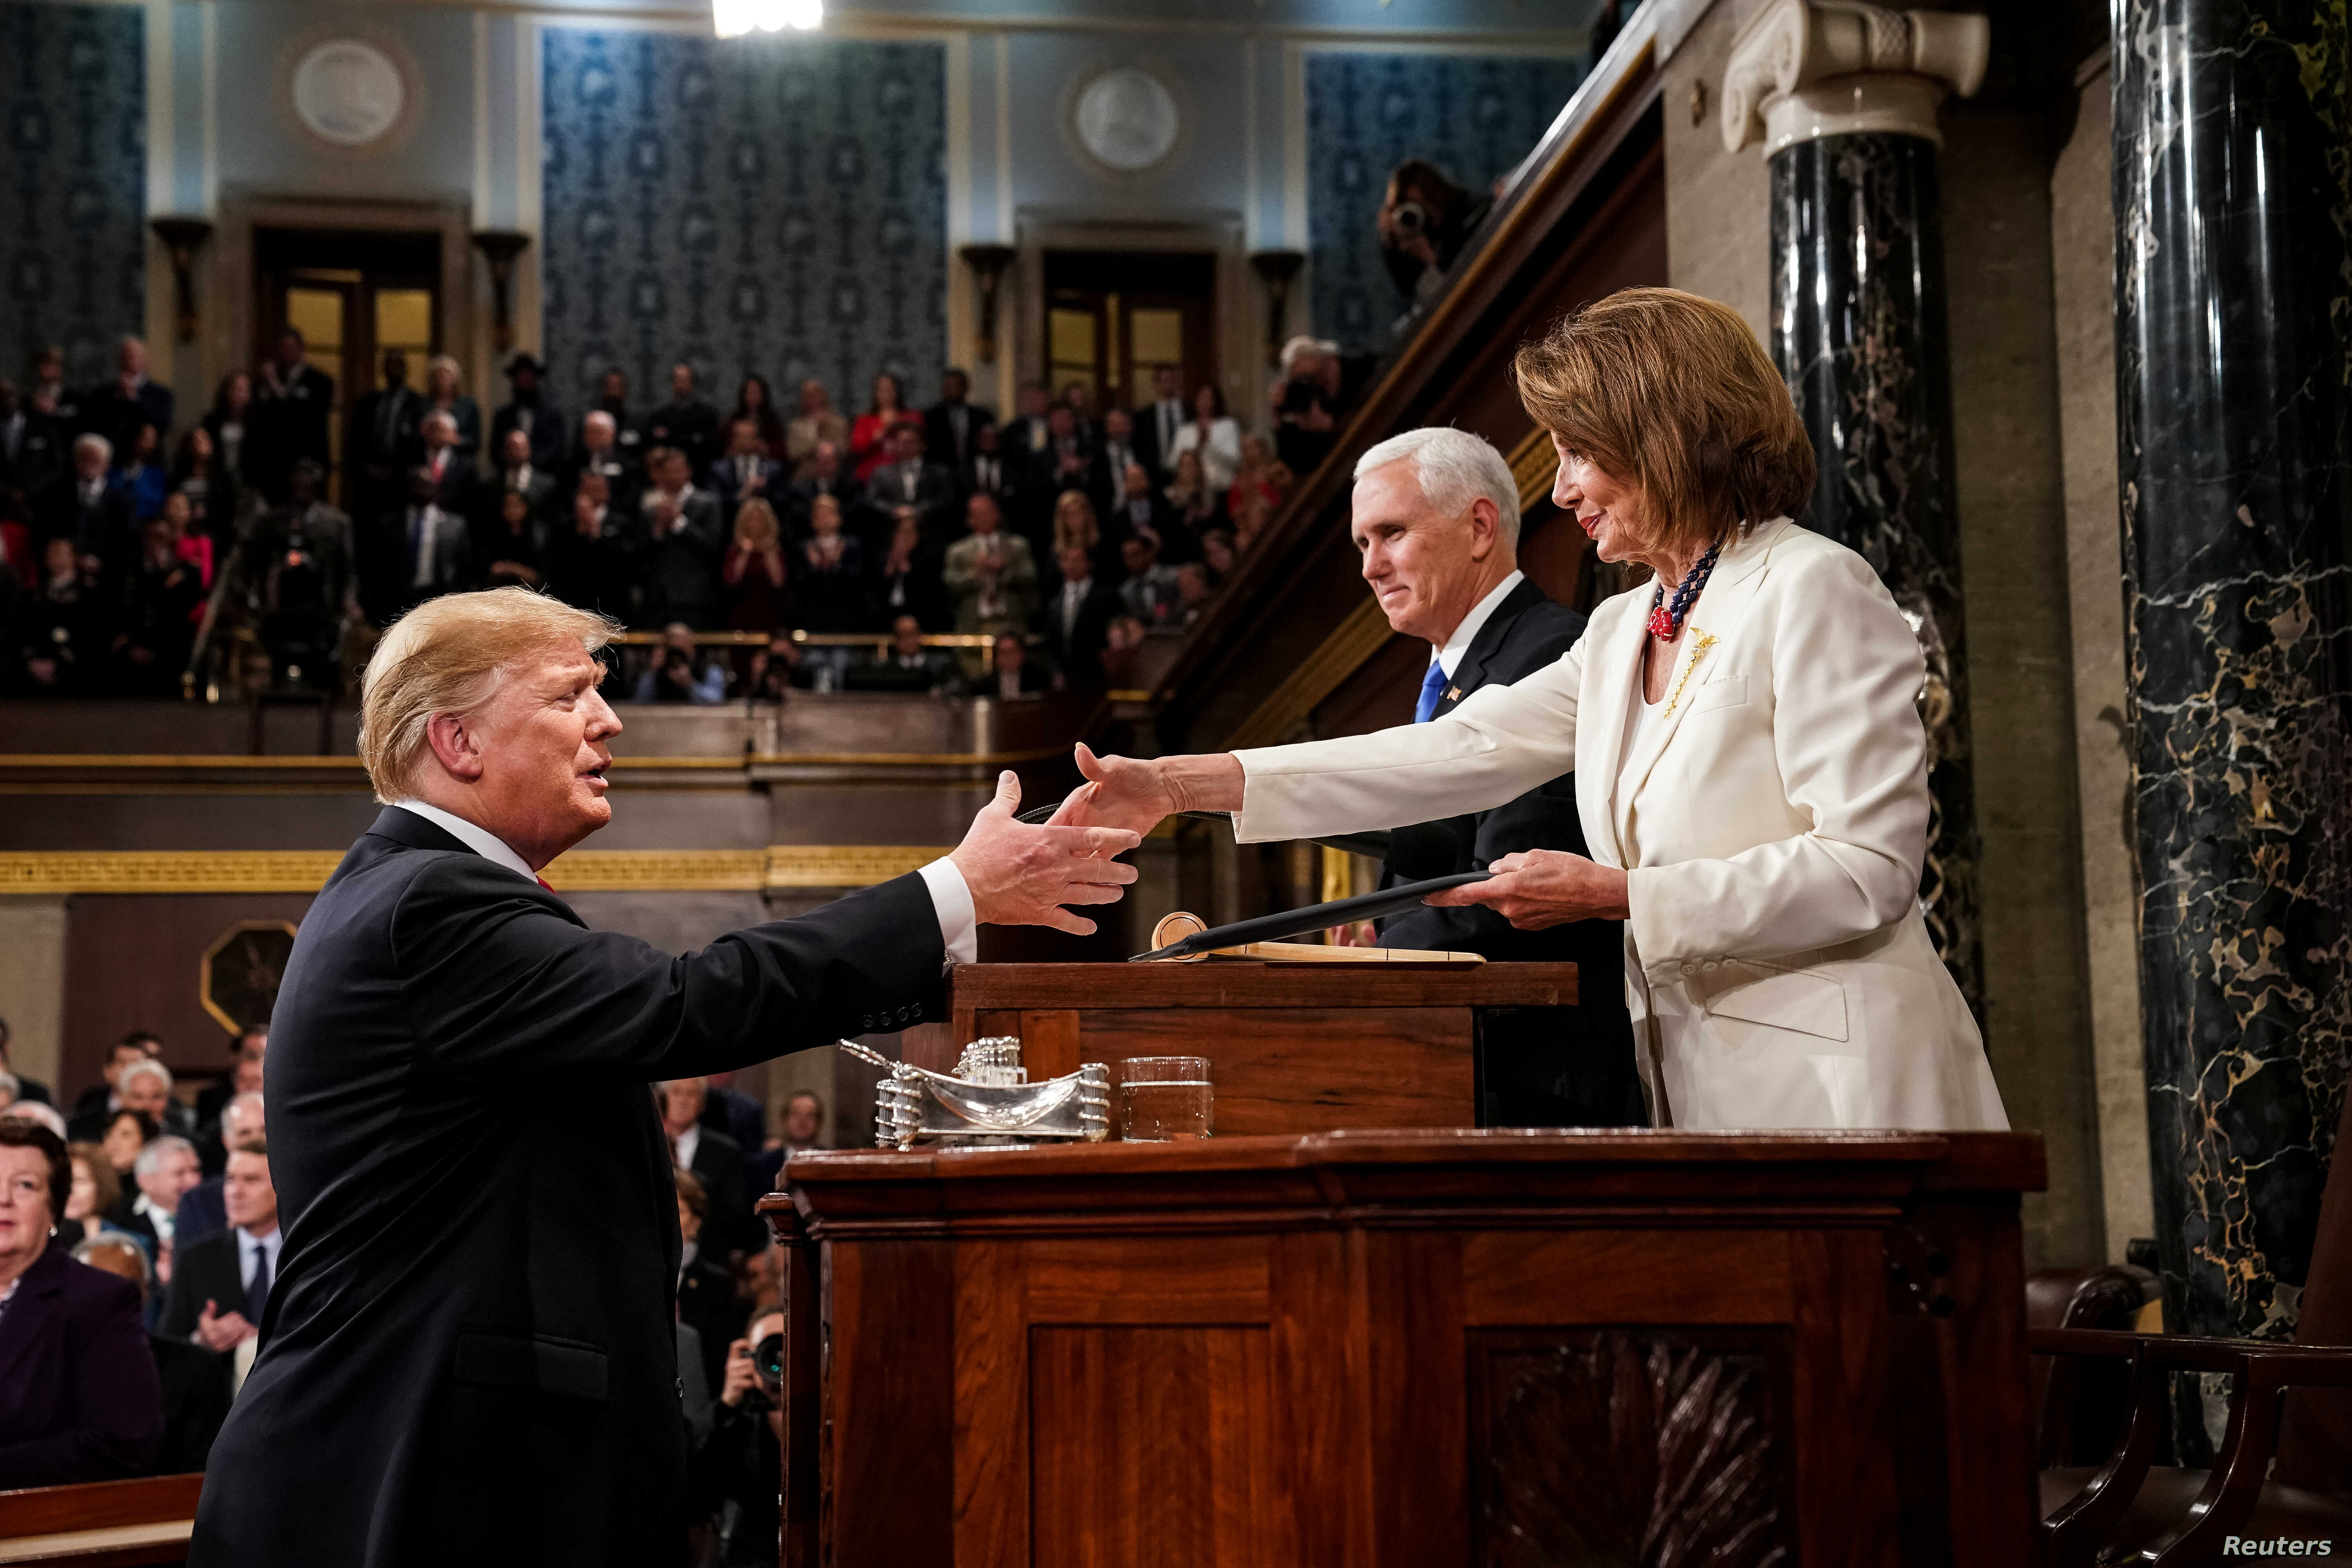 President Donald Trump, before delivering the State of the Union address, shakes the hand of Speaker of the House Nancy Pelosi. Vice President Mike Pence, center, is also in attendance at the Capitol in Washington, February 5, 2019.